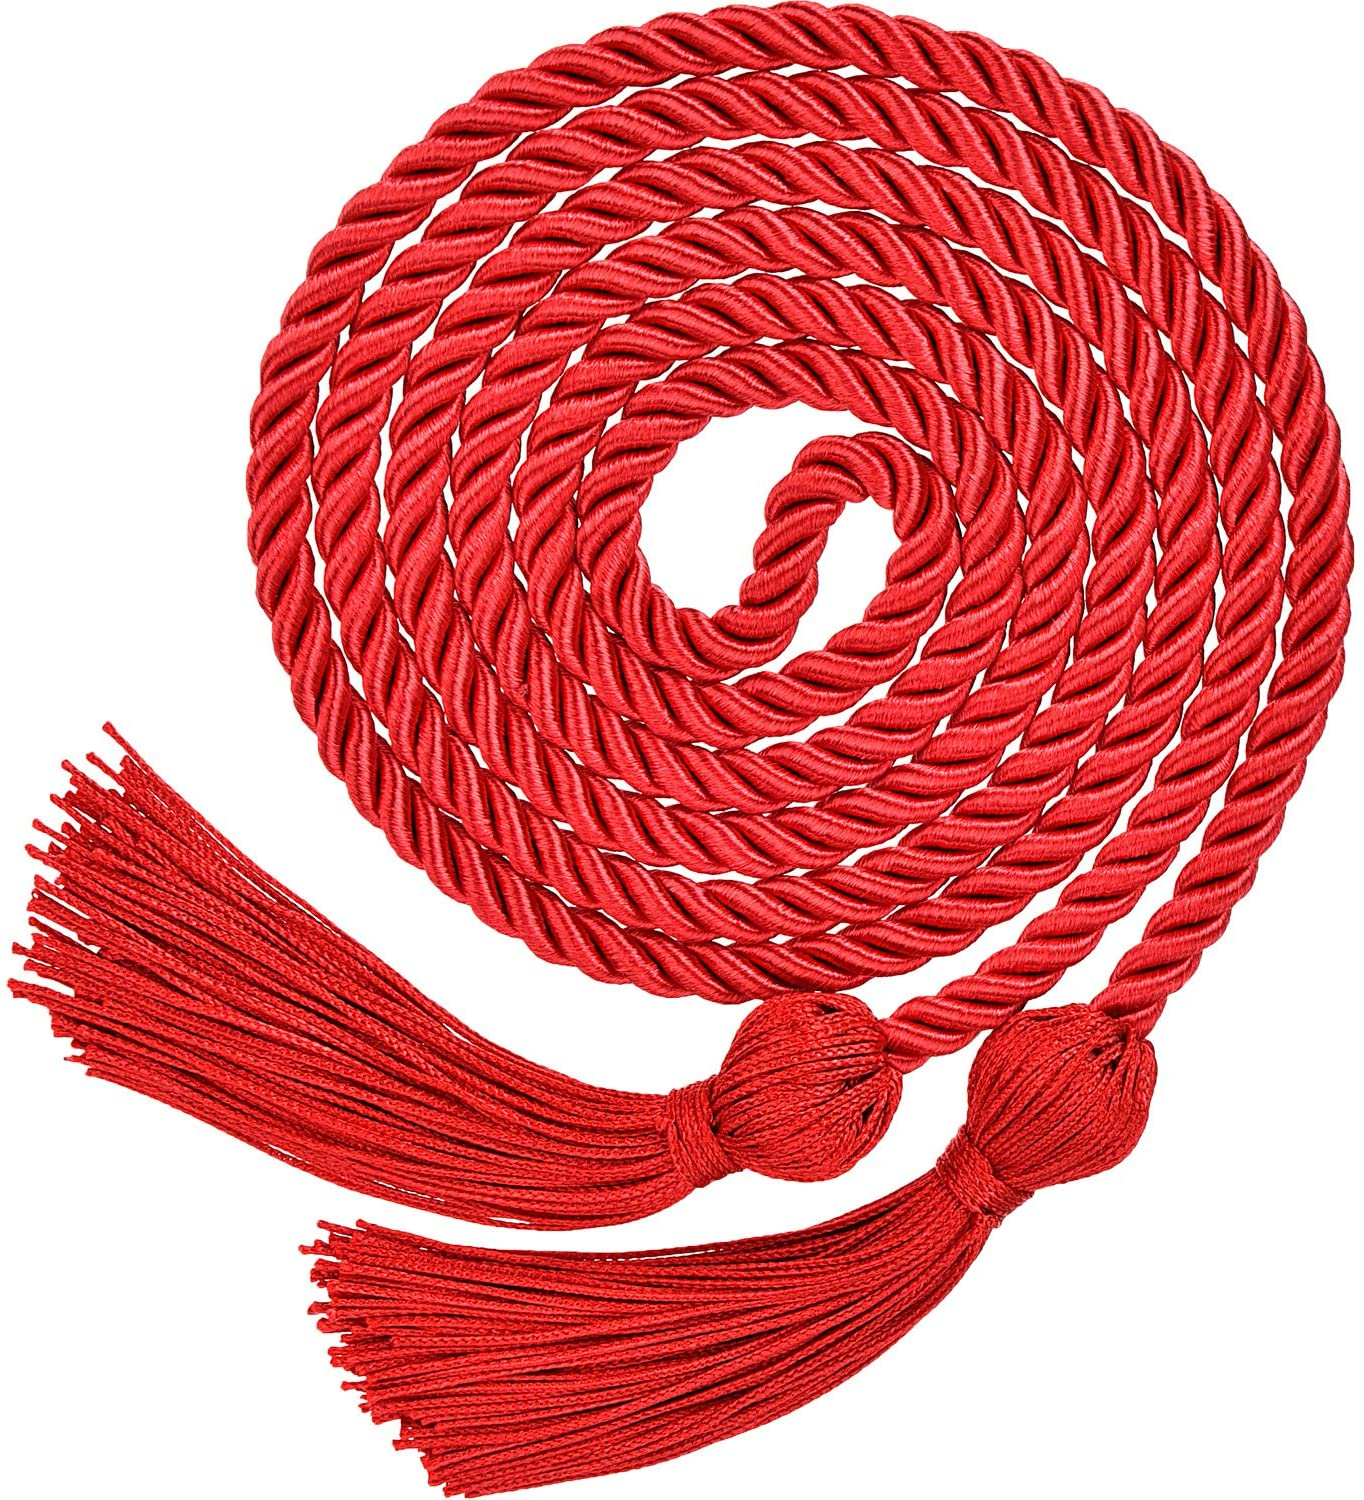 TecUnite Graduation Honor Cords Tassels Cord Polyester Yarn Honor Cord for Bachelor Gown for Graduation Students (Red)